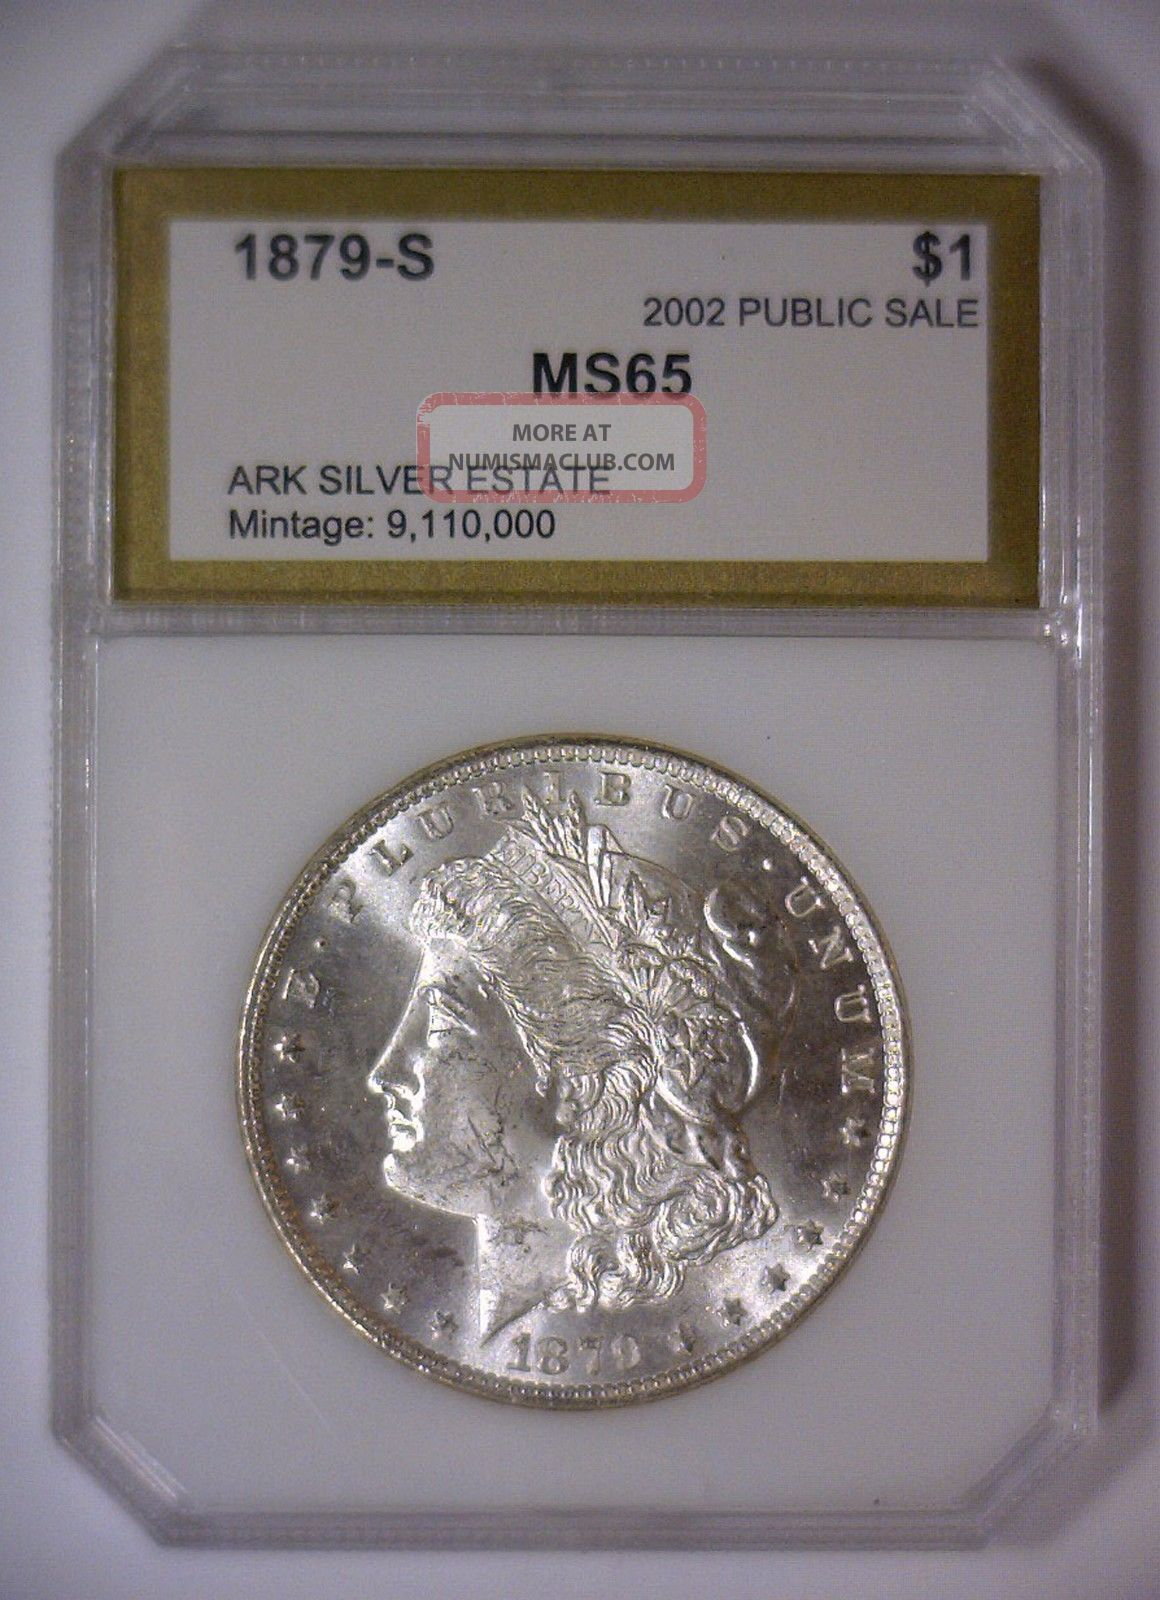 1879 S Morgan Silver Dollar Ms $1 Arkansas Silver Estate 2002 Gem Bu Unc Morgan (1878-1921) photo